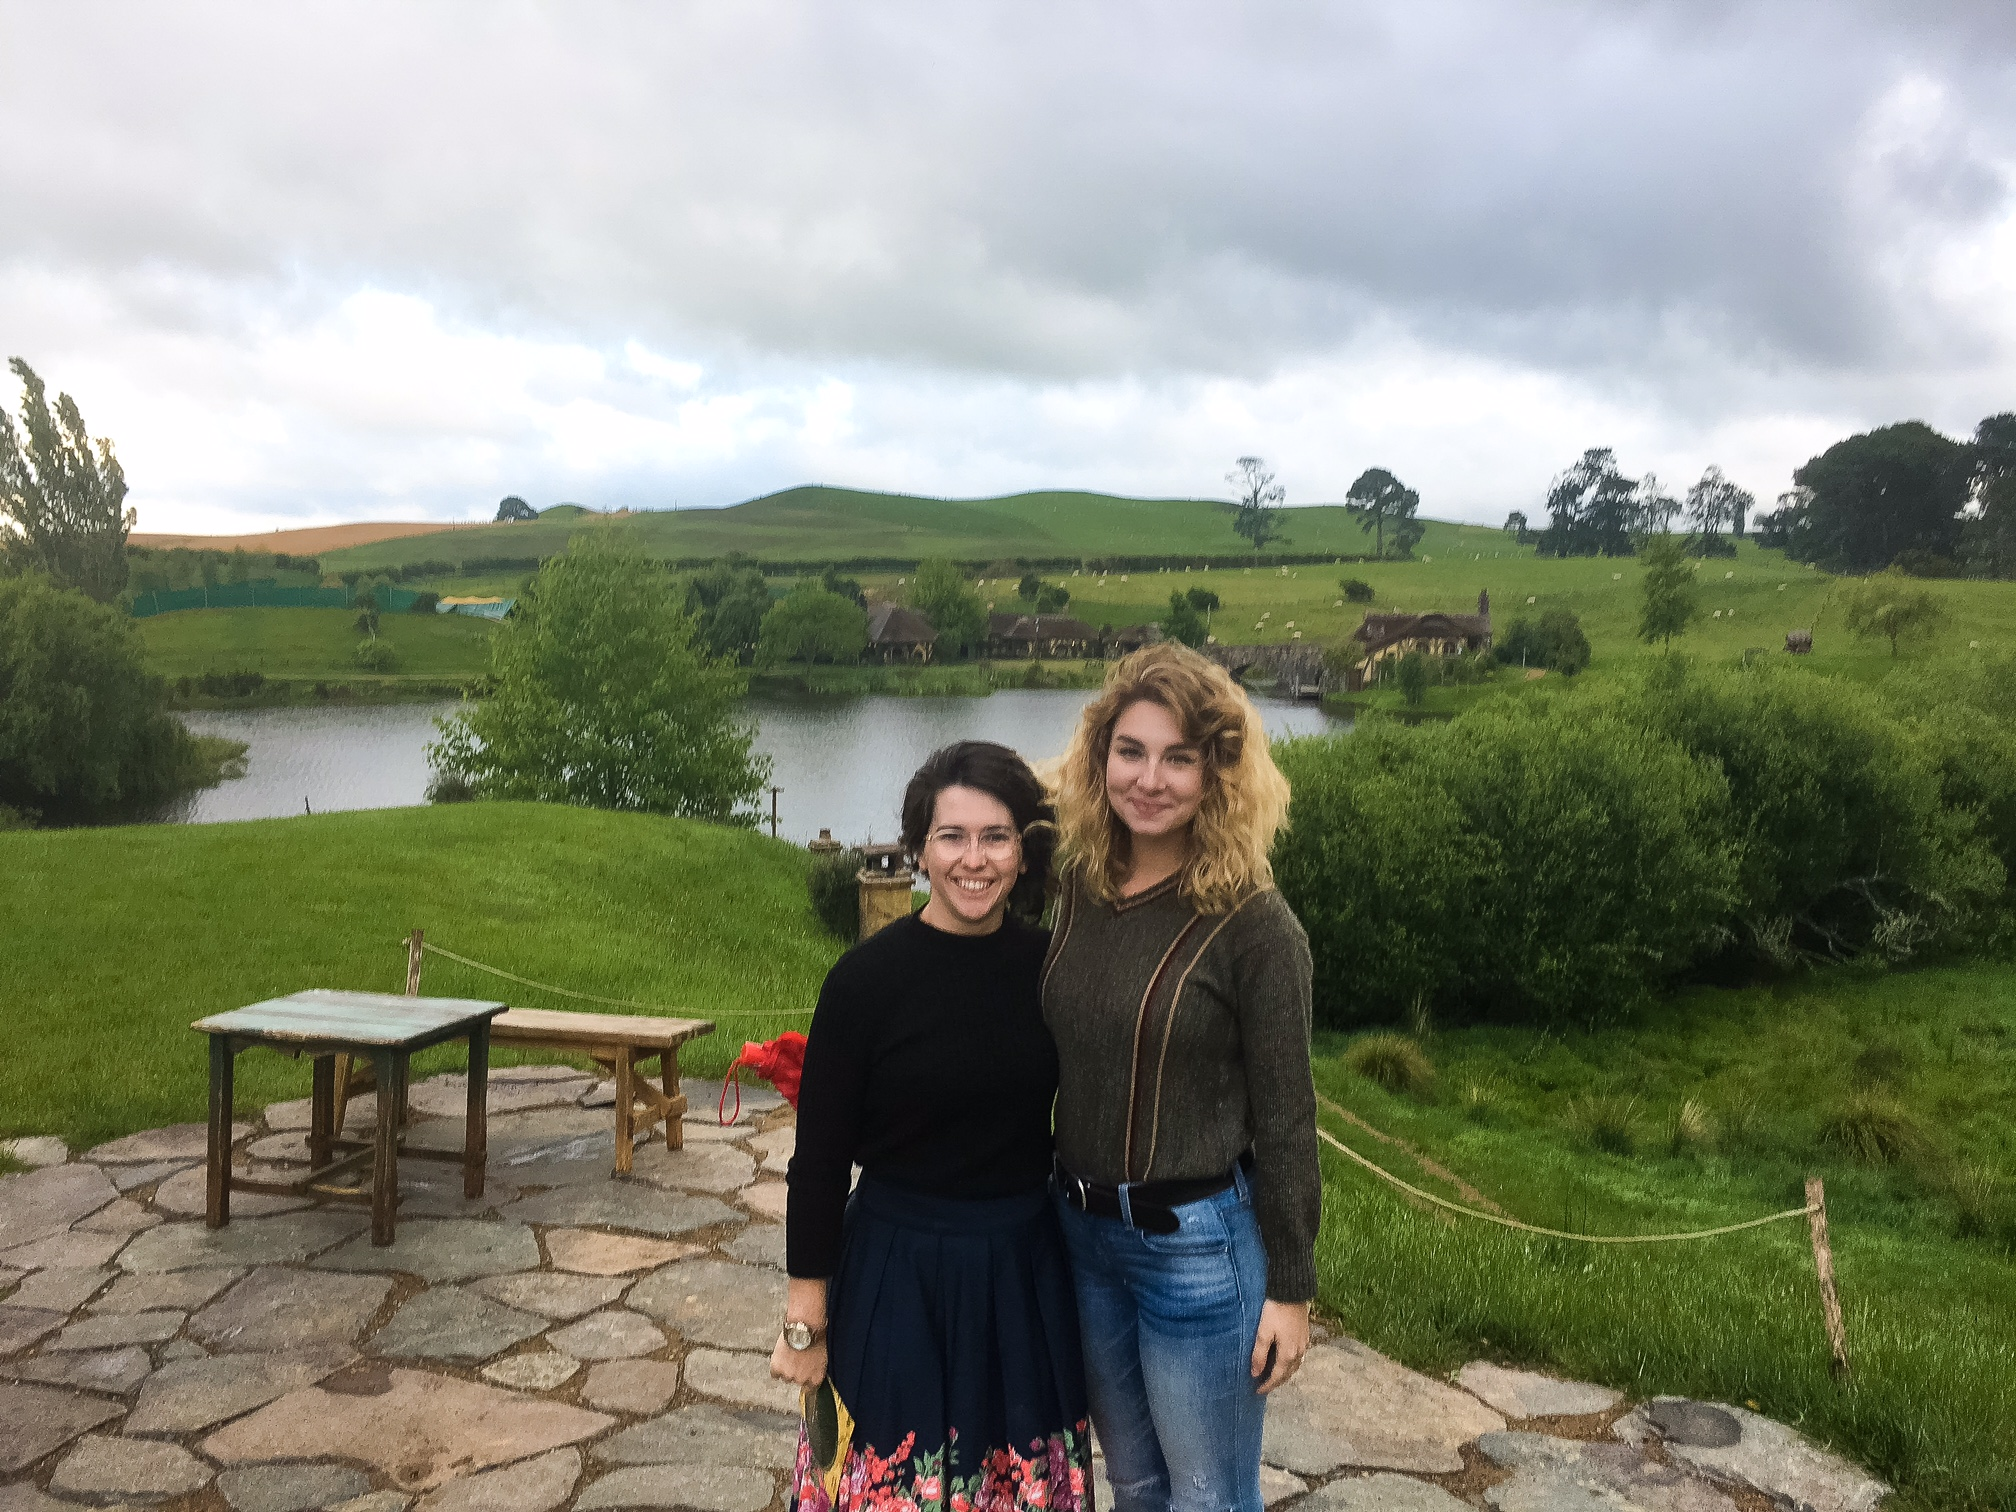 I recently had a conference dinner at Hobbiton in New Zealand. Yes, HOBBITON. I am an avid Tolkien fan so this was the best thing that ever happened to me. I think it will be hard to top this one, but do everything you can to be at conference dinners!